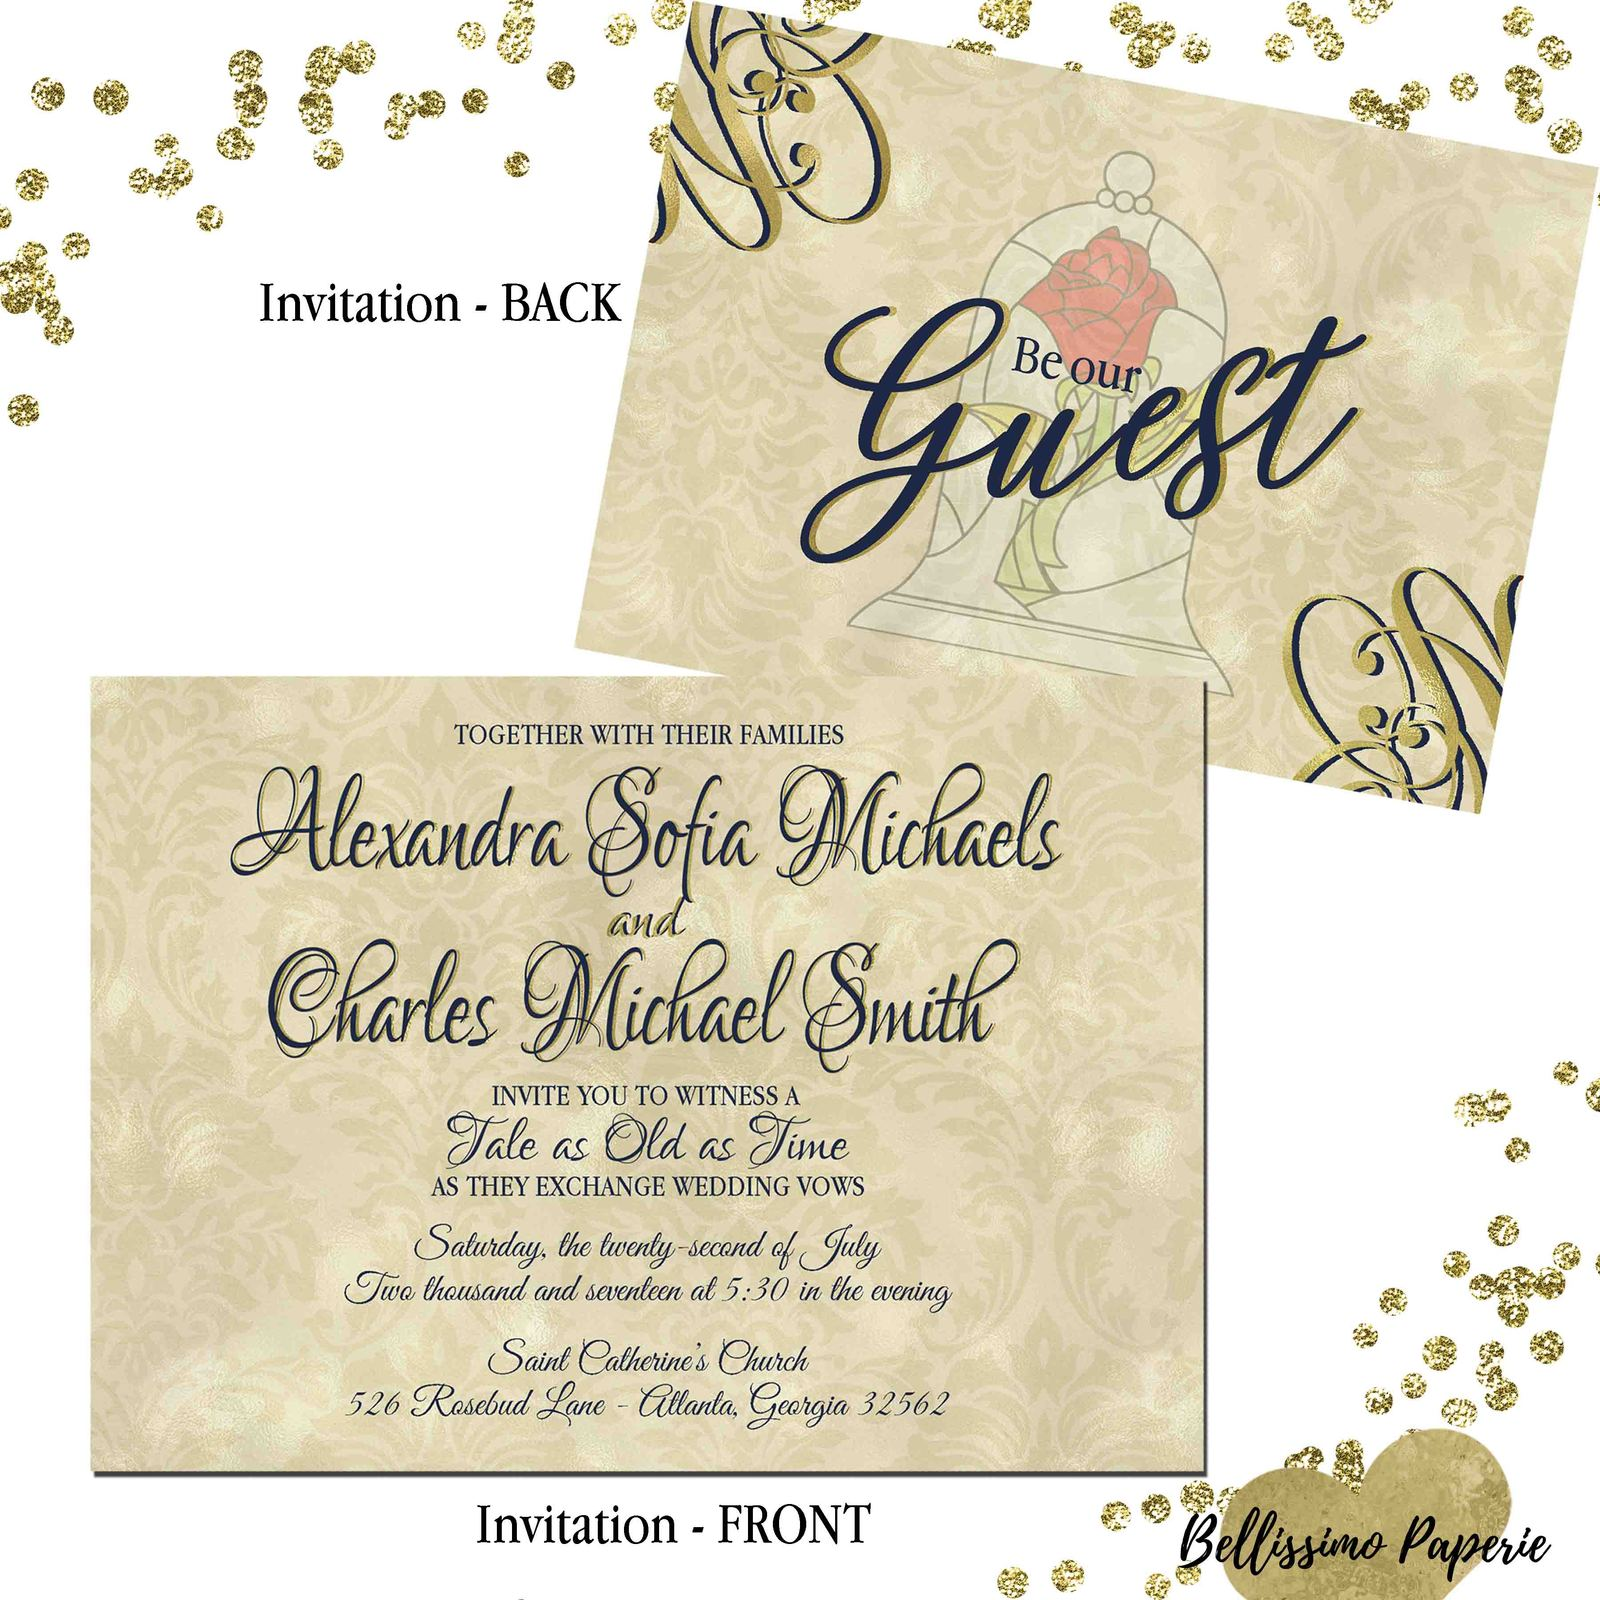 Beauty and the Beast Wedding invitation Set: and similar items